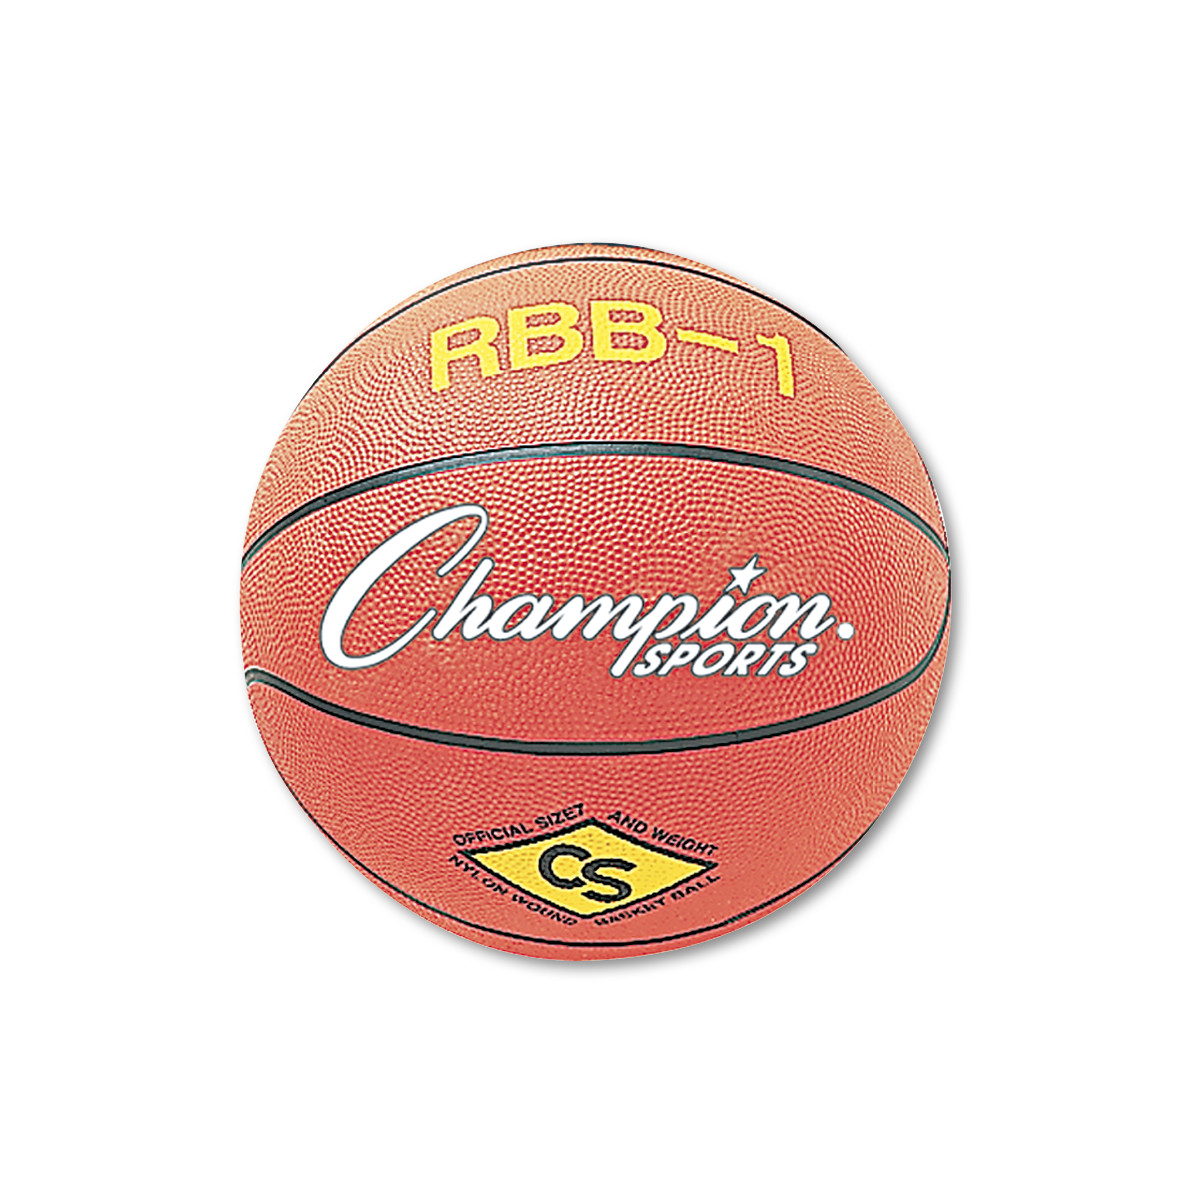 Champion Sport, CSIRBB1, s Pro Rubber Basketball, 1 Each, Orange,Blue,Green,Purple,Red,Yellow by CHAMPION SPORT